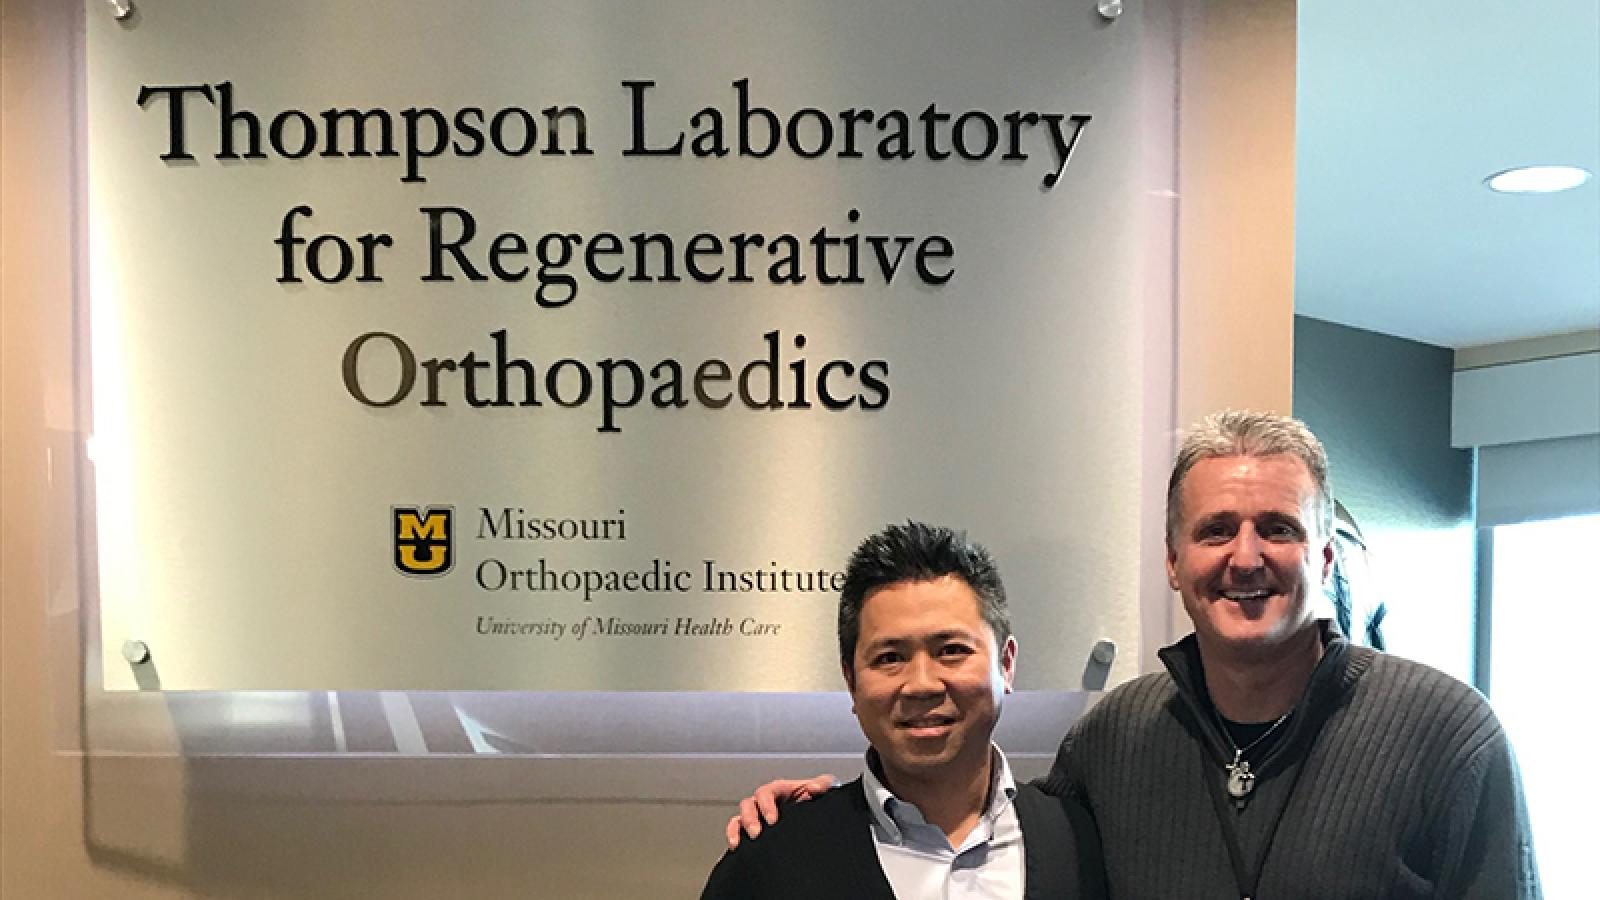 Simon Tang, PhD, Assistant Professor in the Department of Orthopaedics at Washington University School of Medicine